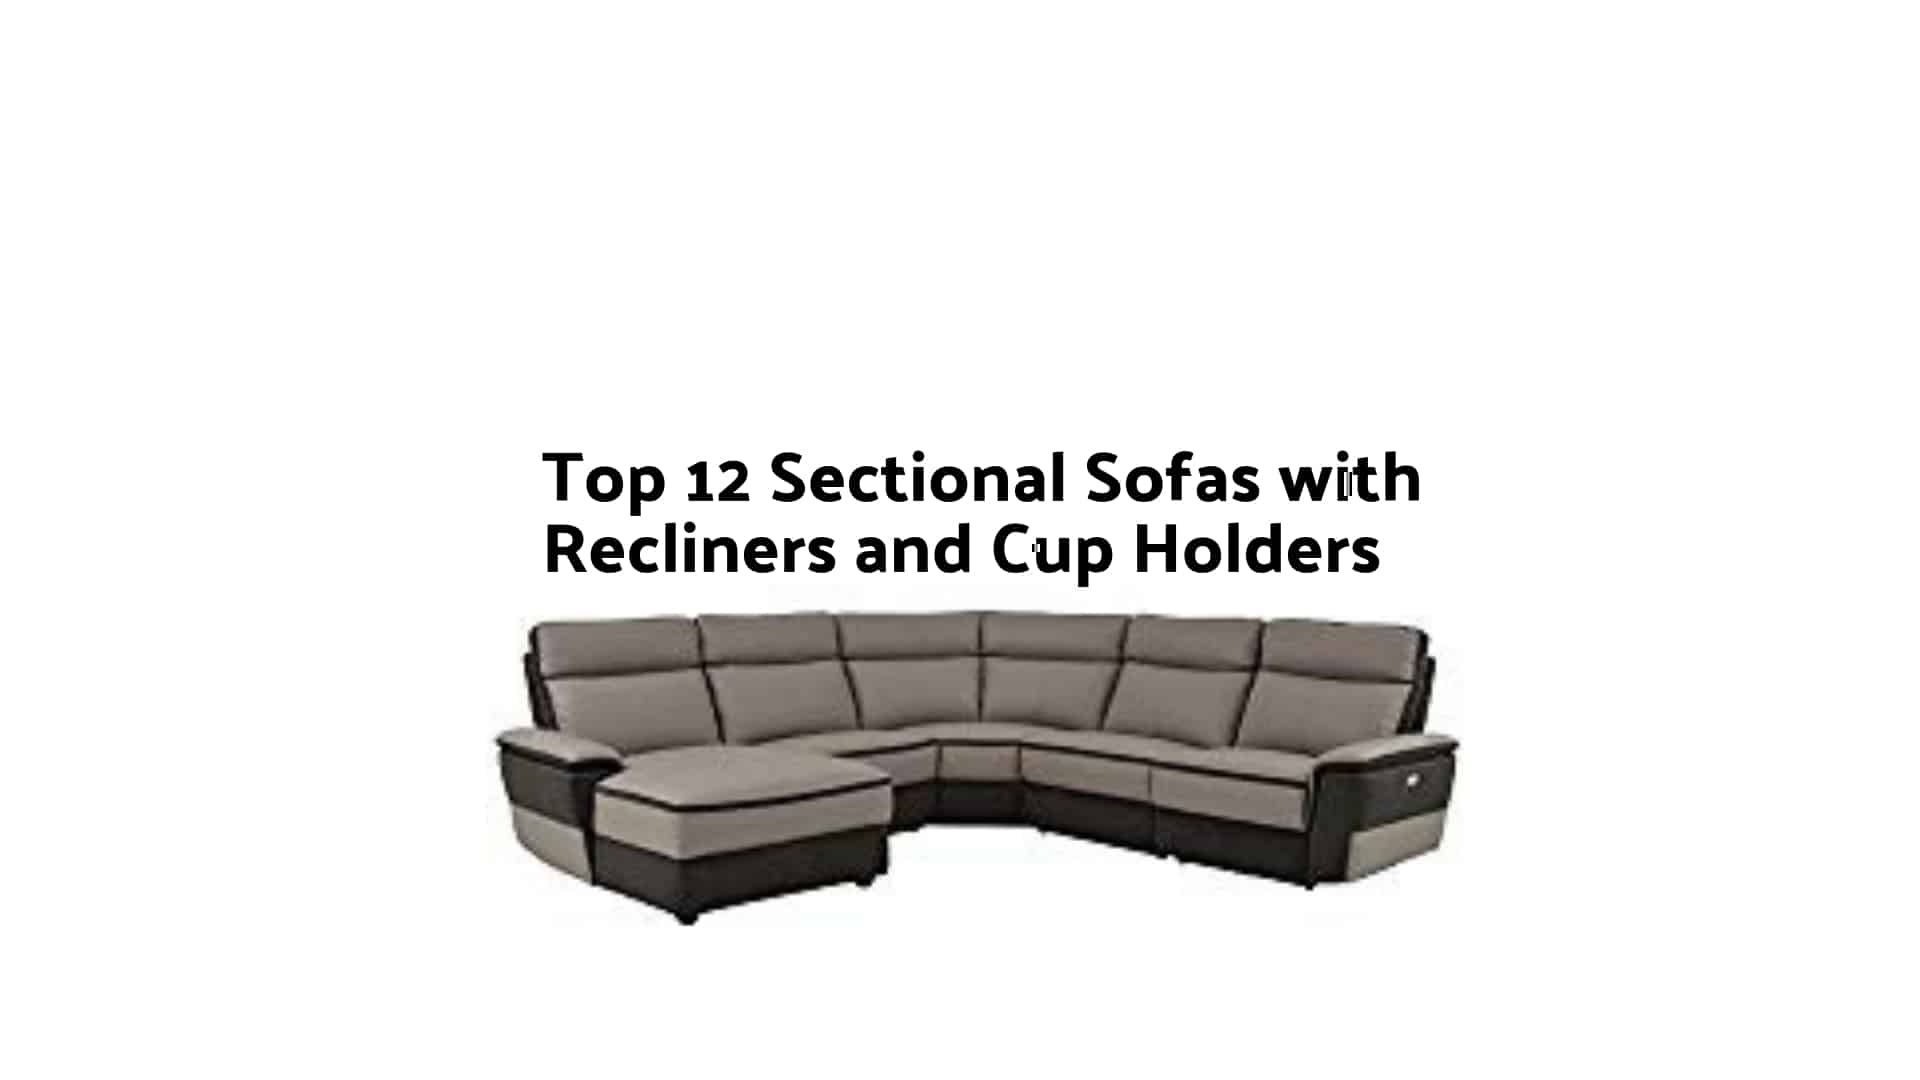 Enjoyable Leather Sectional Sofas With Recliners And Cup Holders Gamerscity Chair Design For Home Gamerscityorg